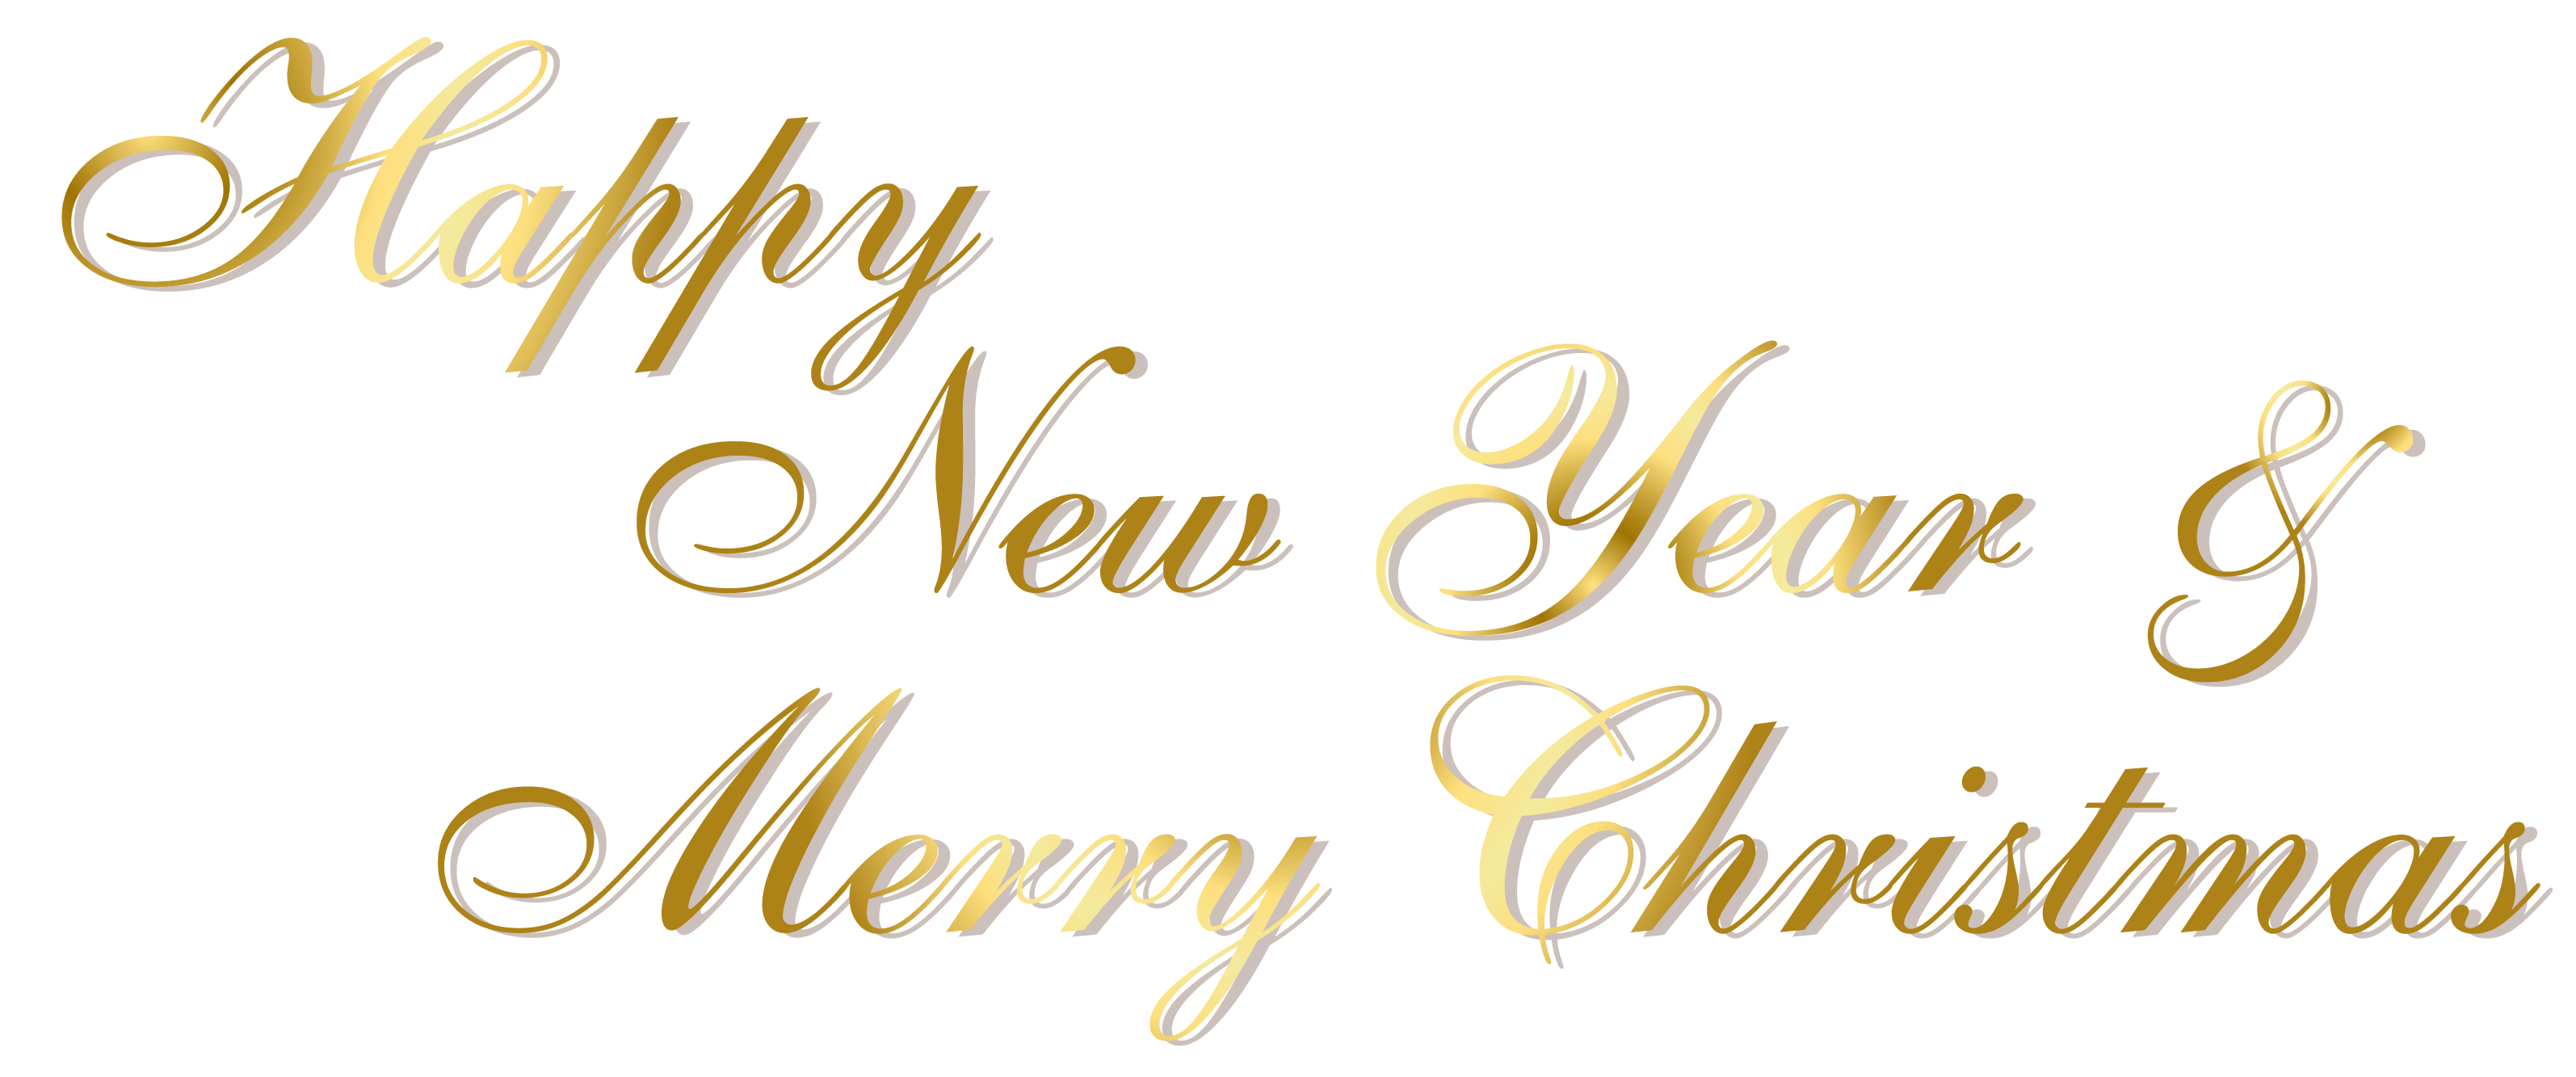 Gold Happy New Year and Merry Christmas PNG Text Happy